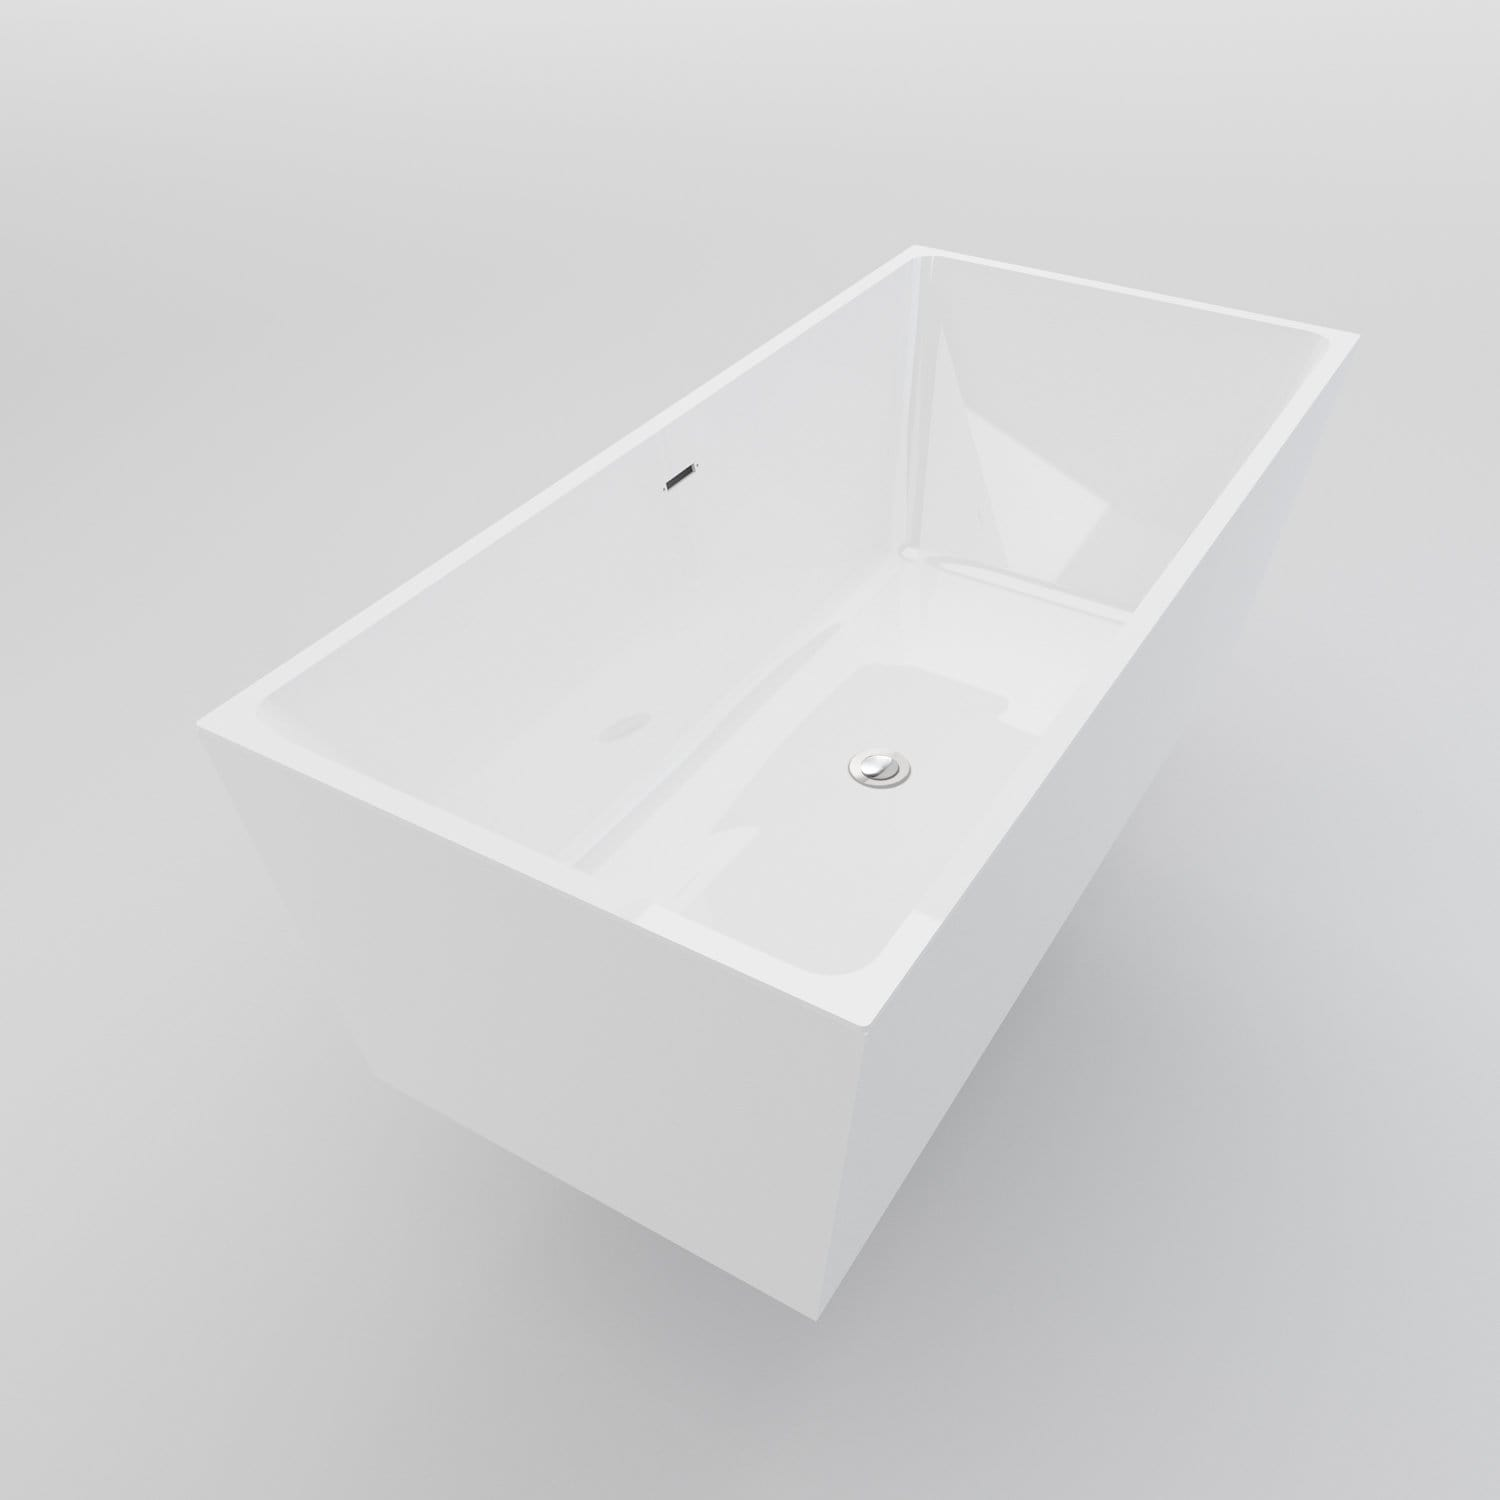 ELEGANT SHOWERS Bathroom Square Free Standing Bath Tub Acrylic ...